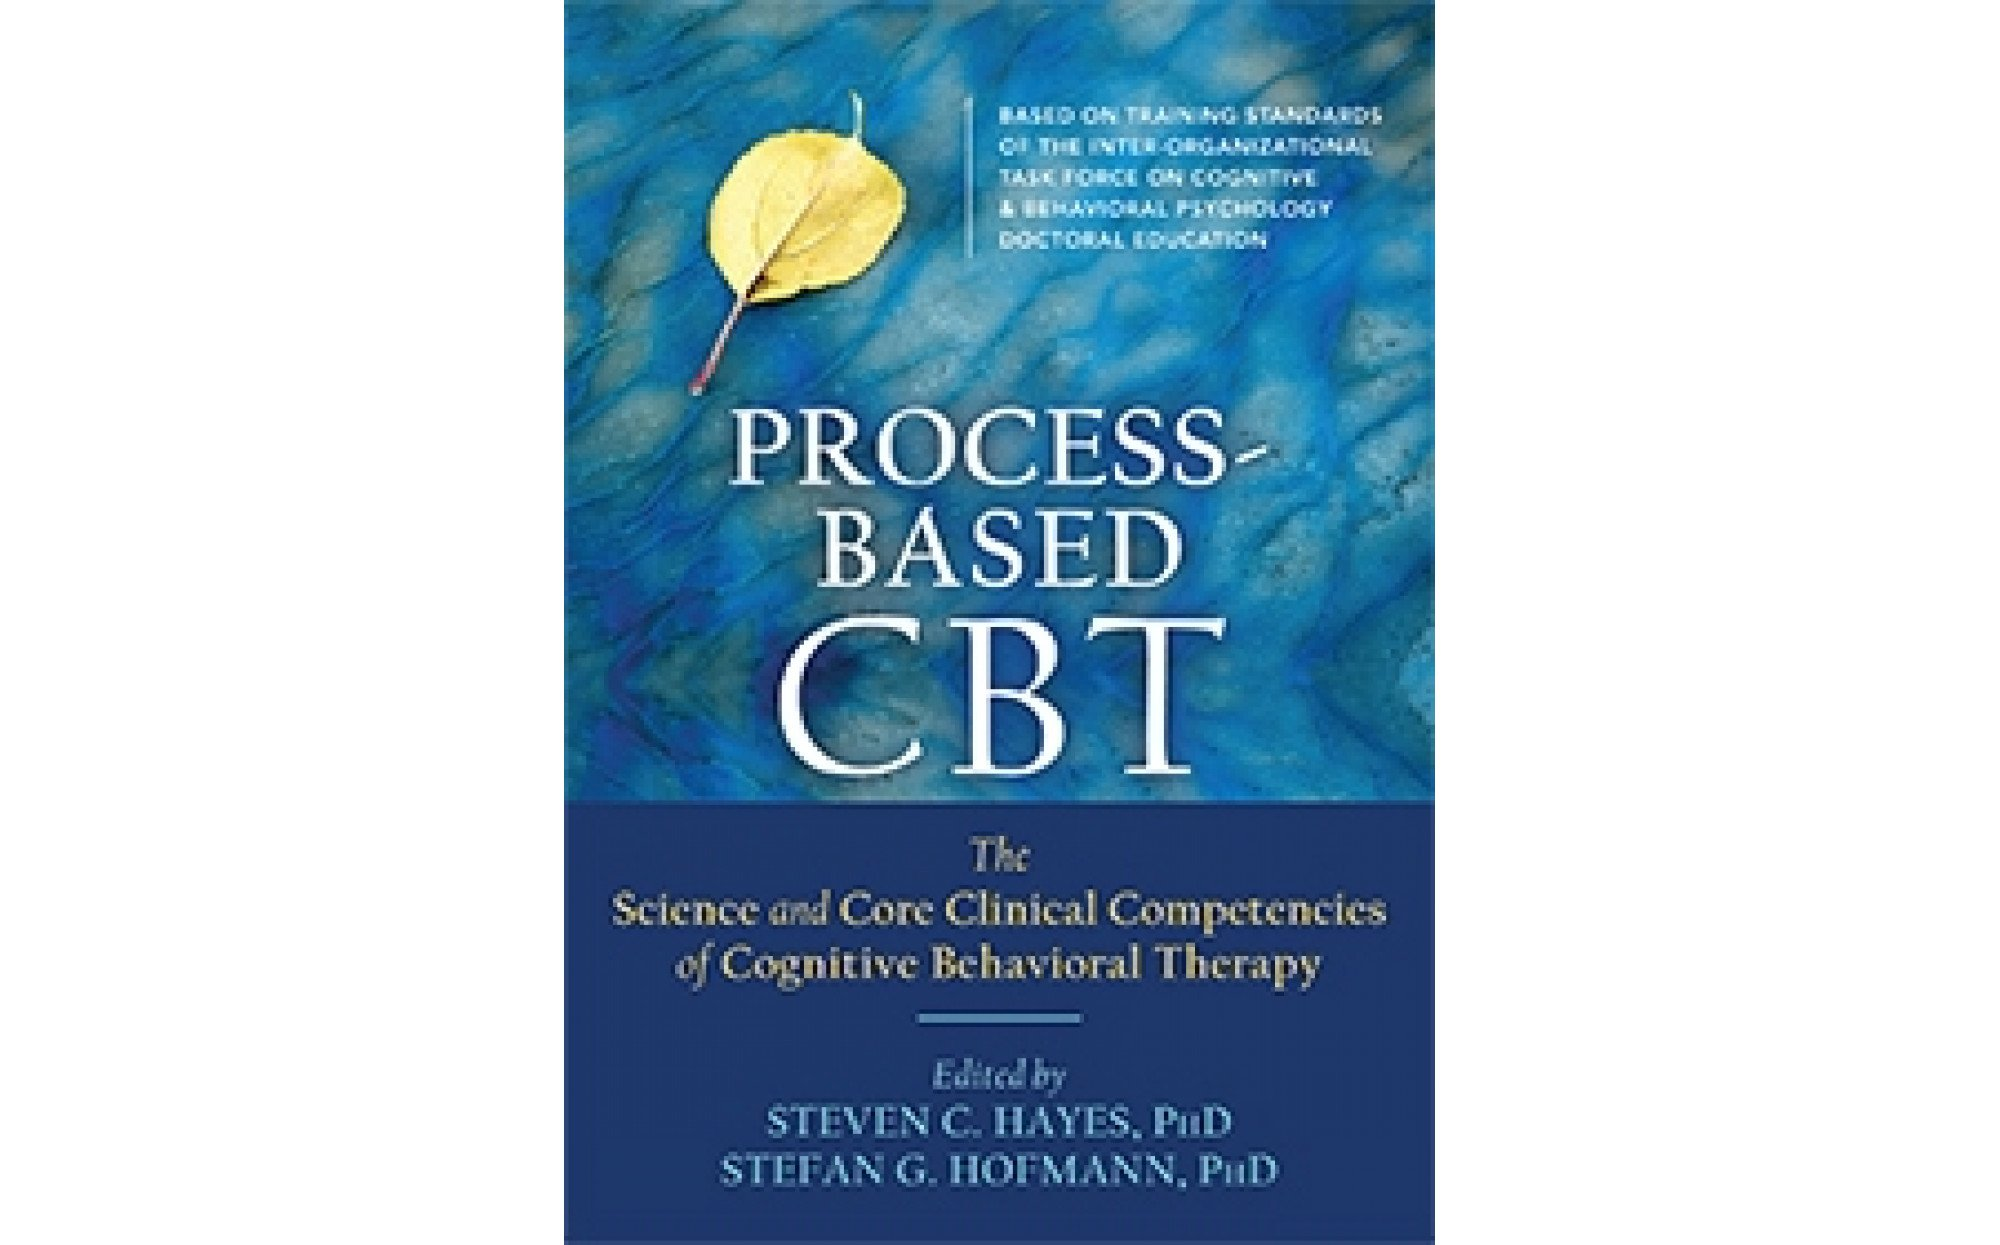 clinical competencies specific to family based therapies Therapy practice and reviews numerous evidence-based family therapy treatments the chapters are organized by presenting problem and include: conduct disorders, substance abuse, childhood behavioral and emotional problems, alcohol abuse.